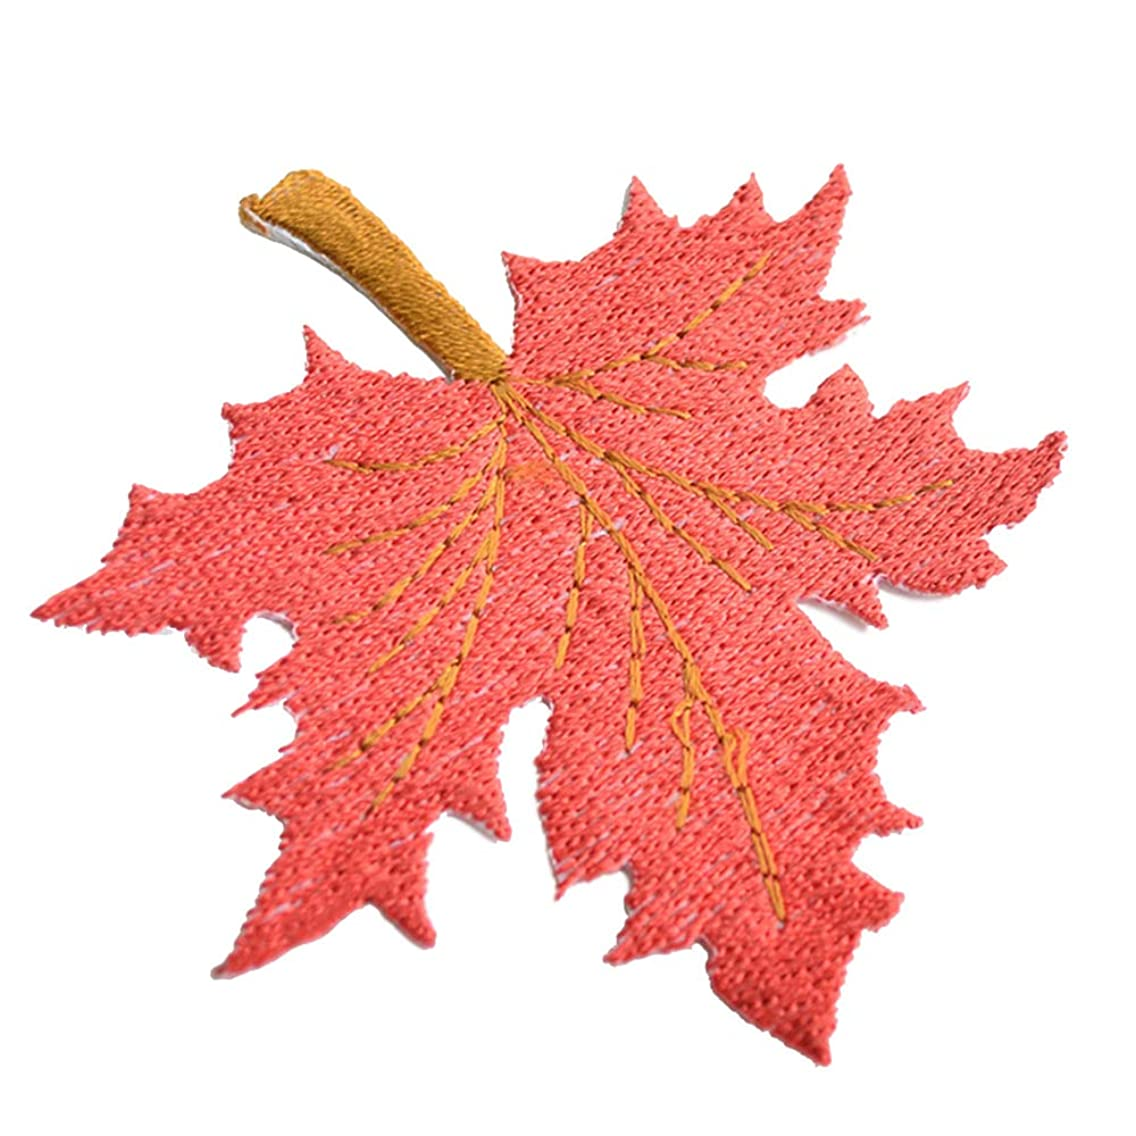 4 Pcs Delicate Embroidered Patches,Iron On Patches, Sew On Applique Patch,Maple Leaves Embroidery Patches, Cool Patches for Men, Women, Boys, Girls, Kids